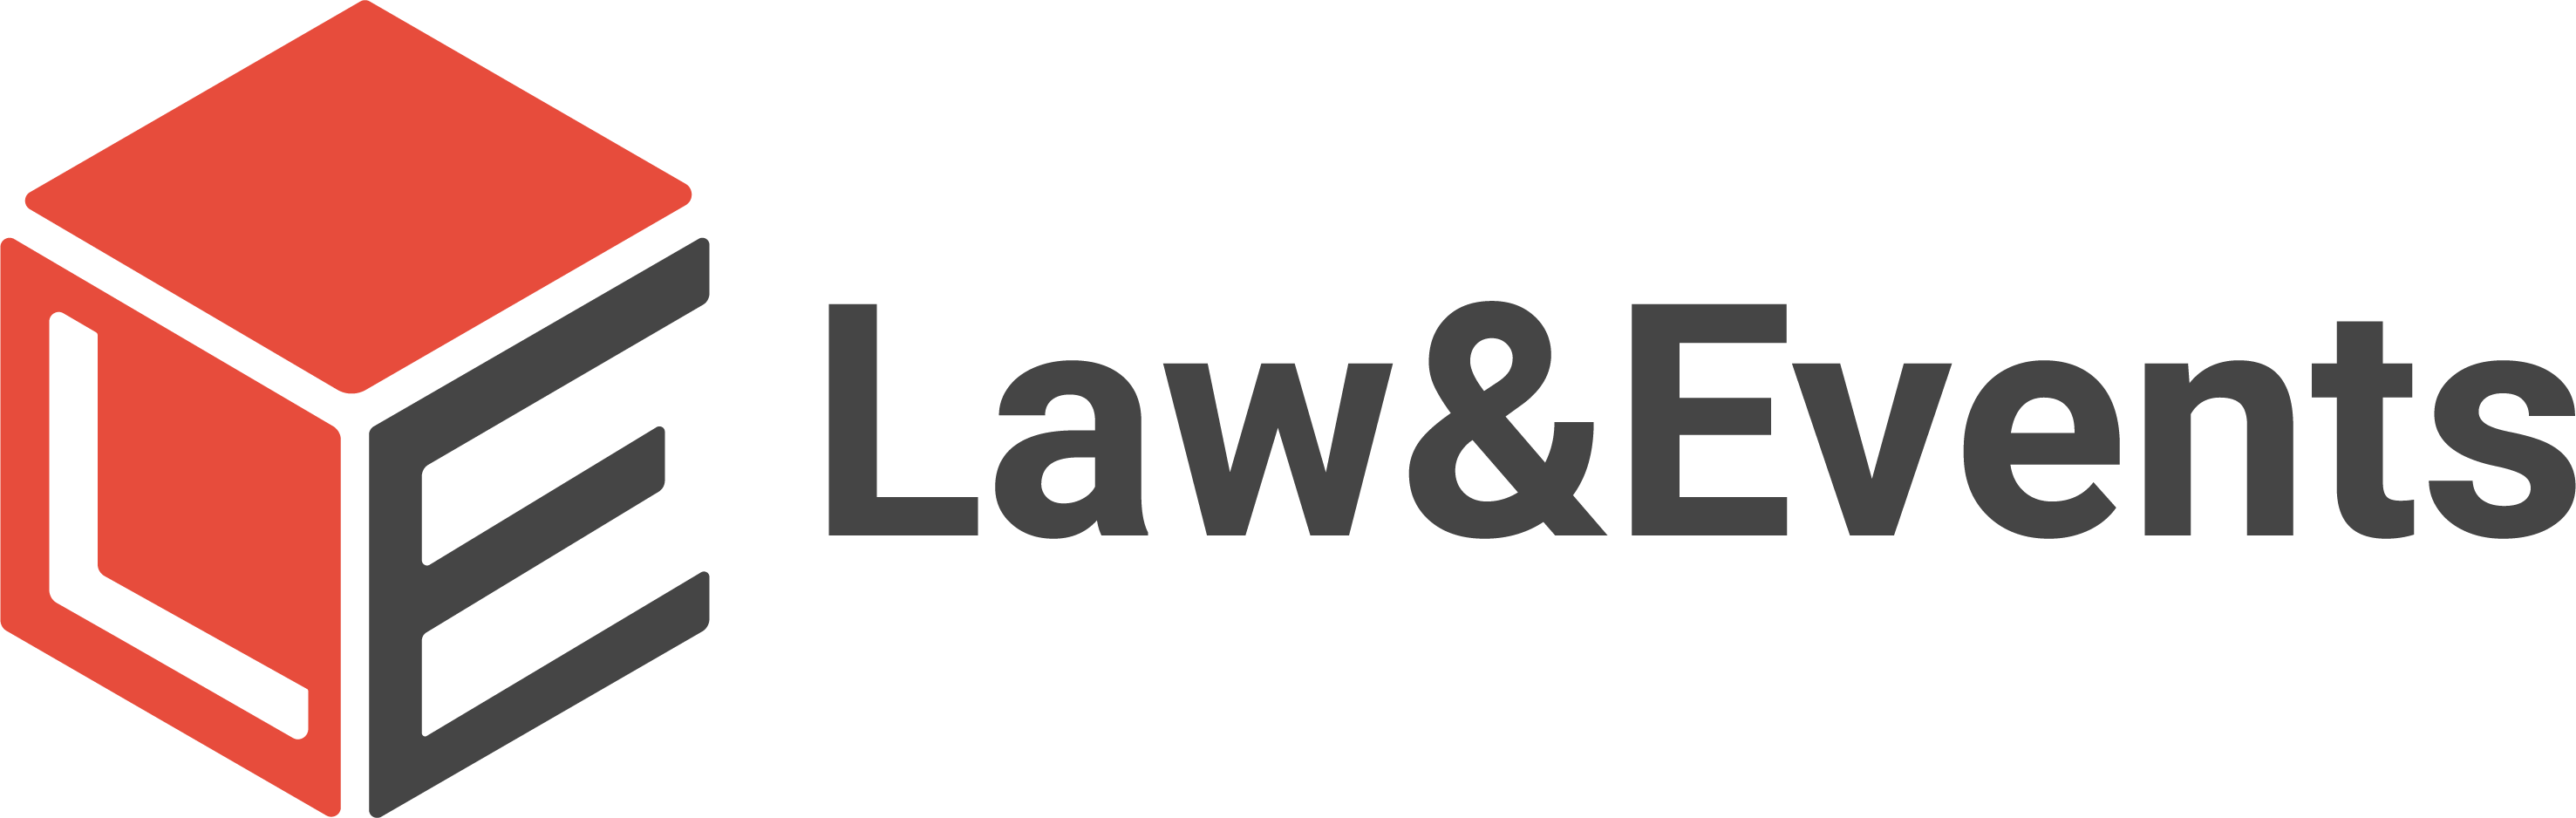 Law & Events